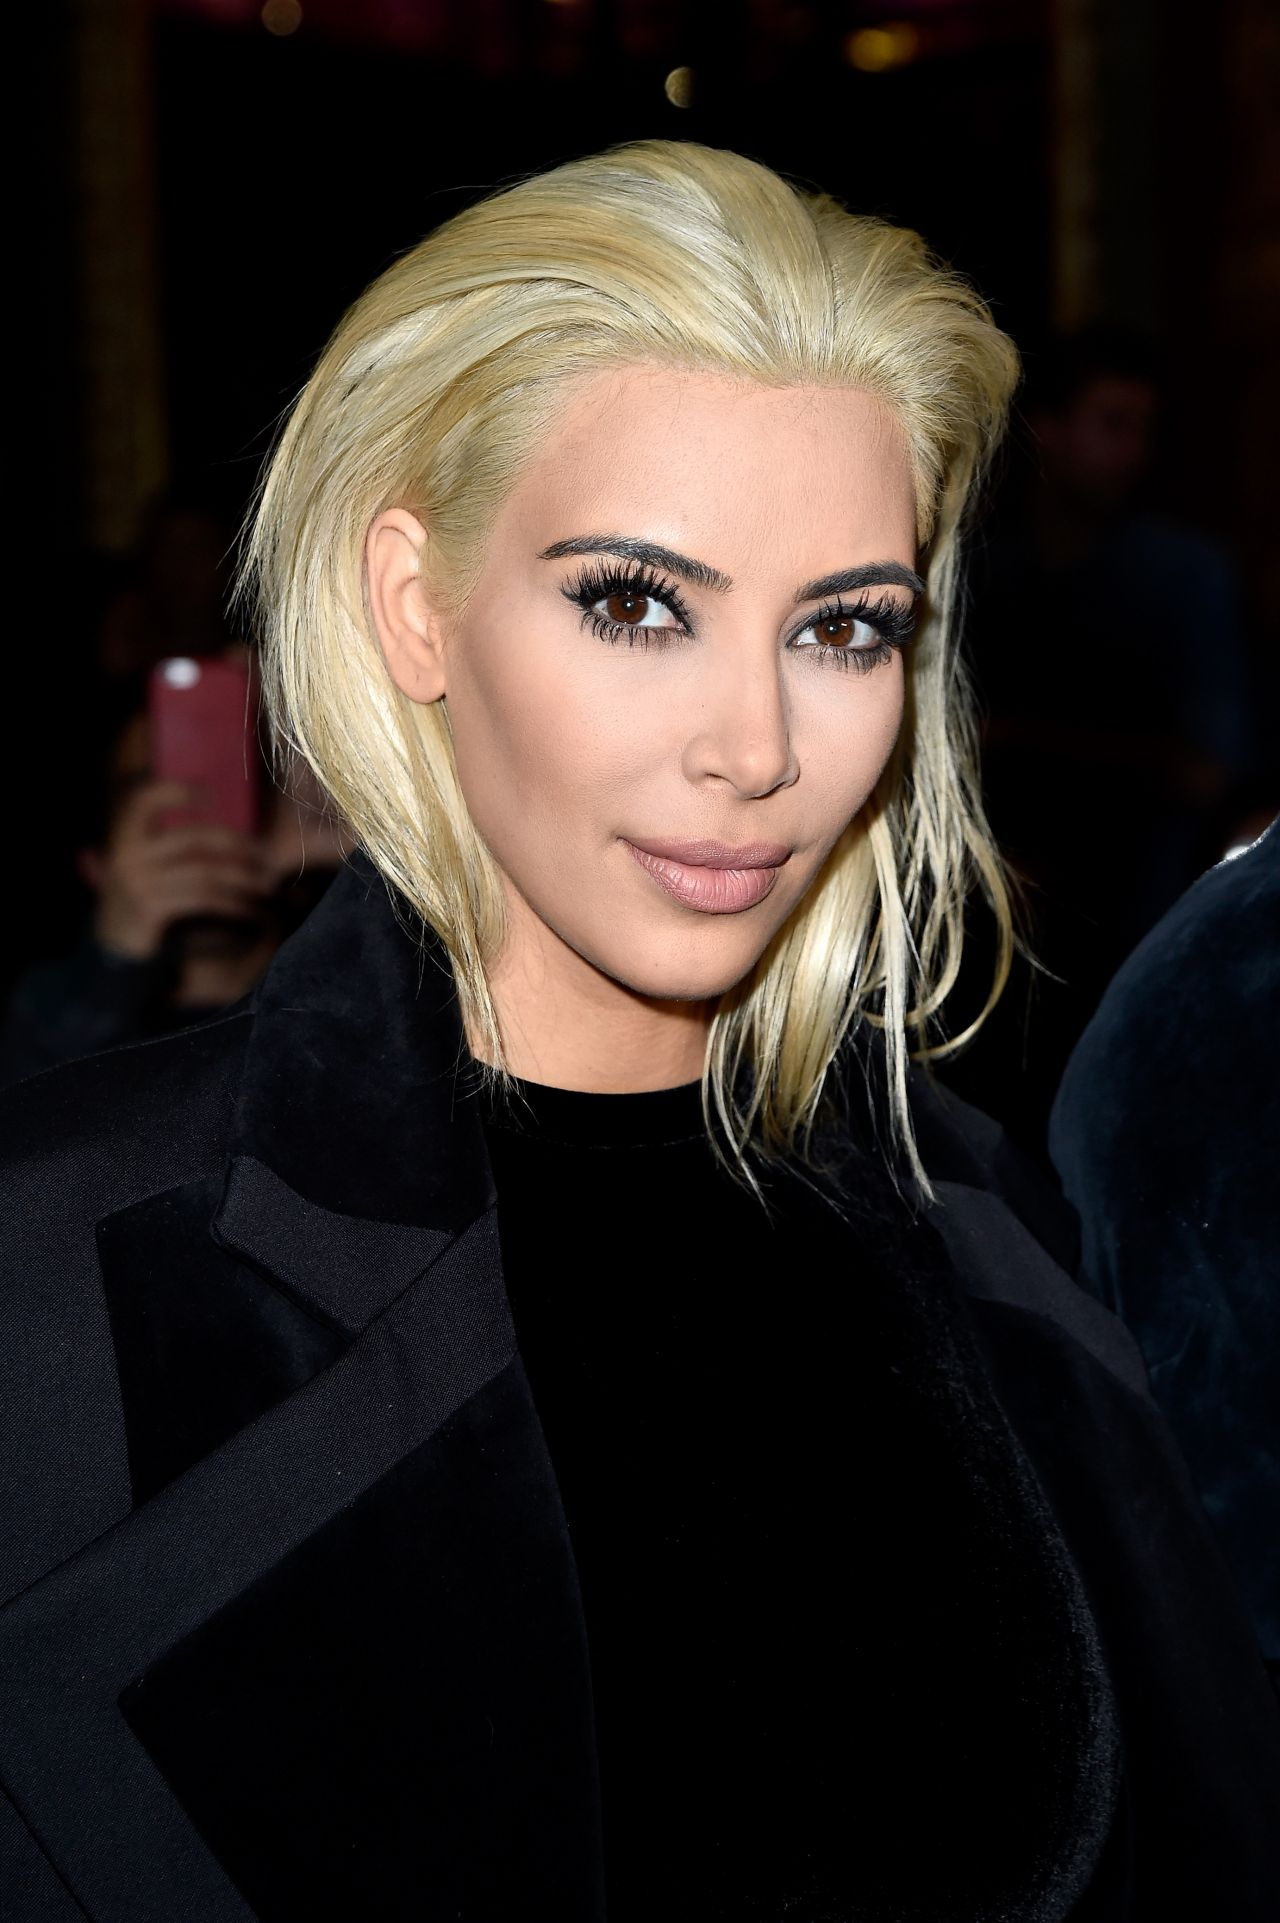 Kim Kardashian Blonde Hair 2015